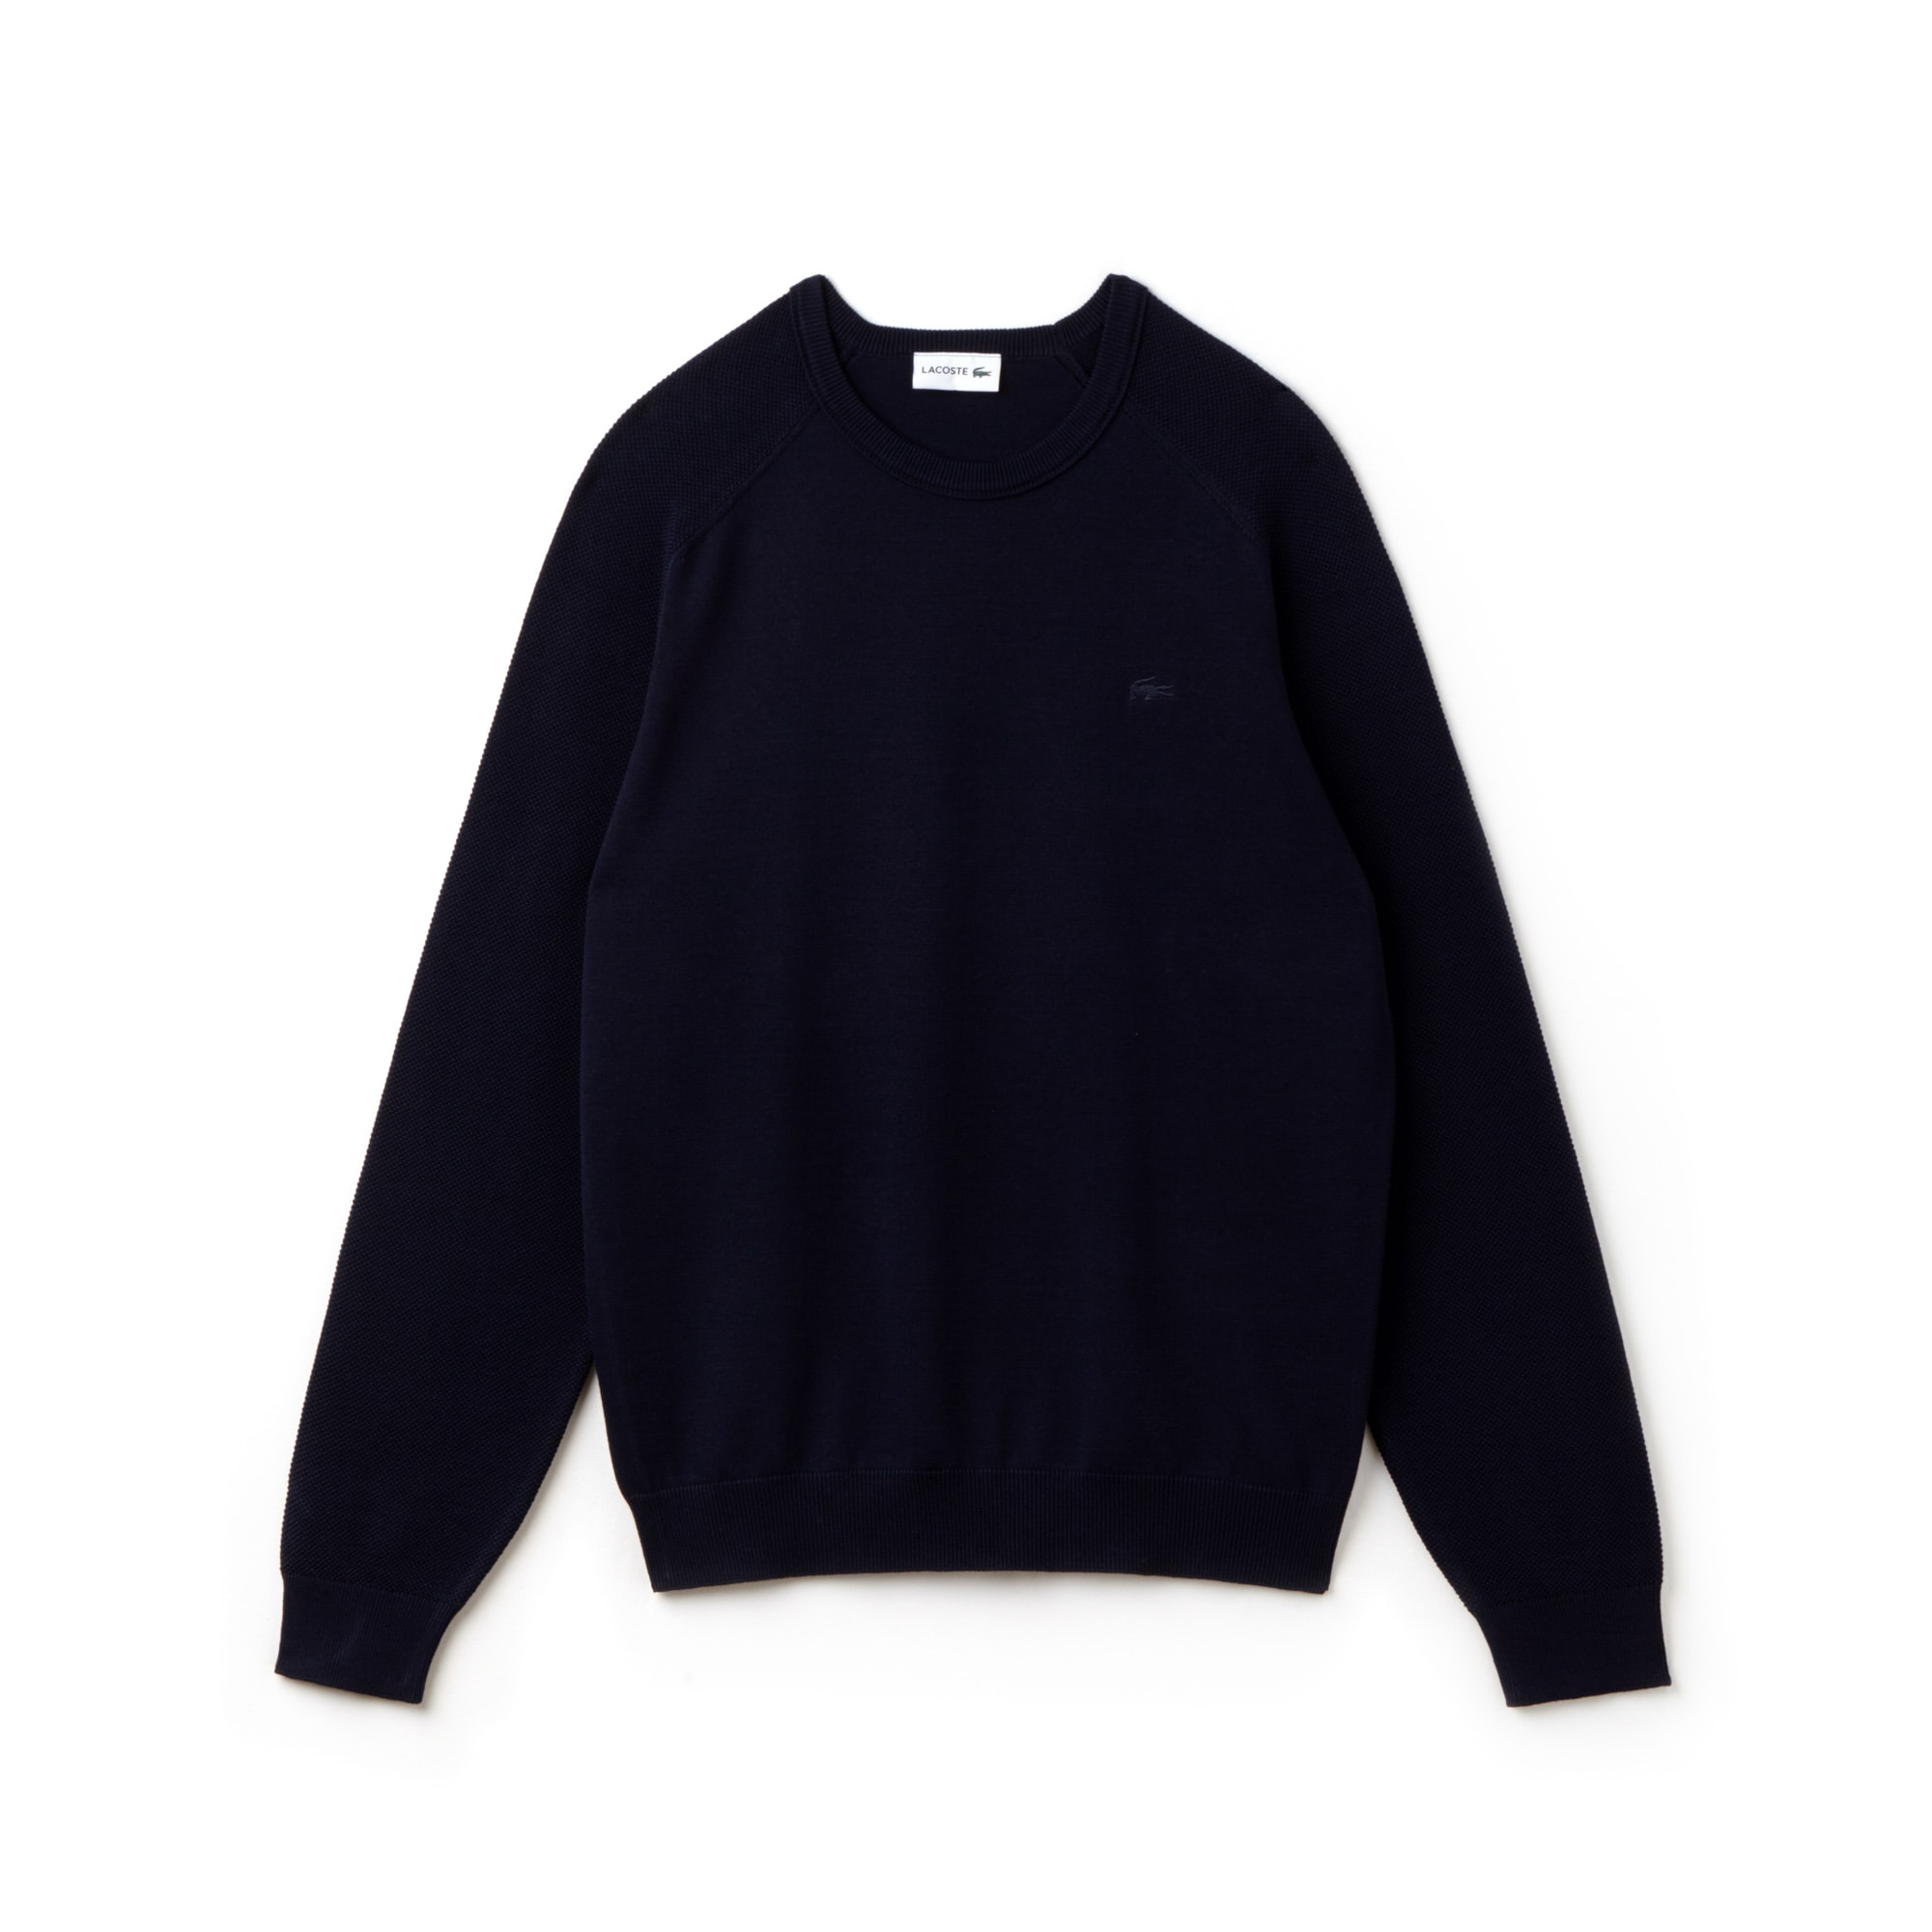 Men's Crew Neck Contrast Sleeves Technical Knit Sweater